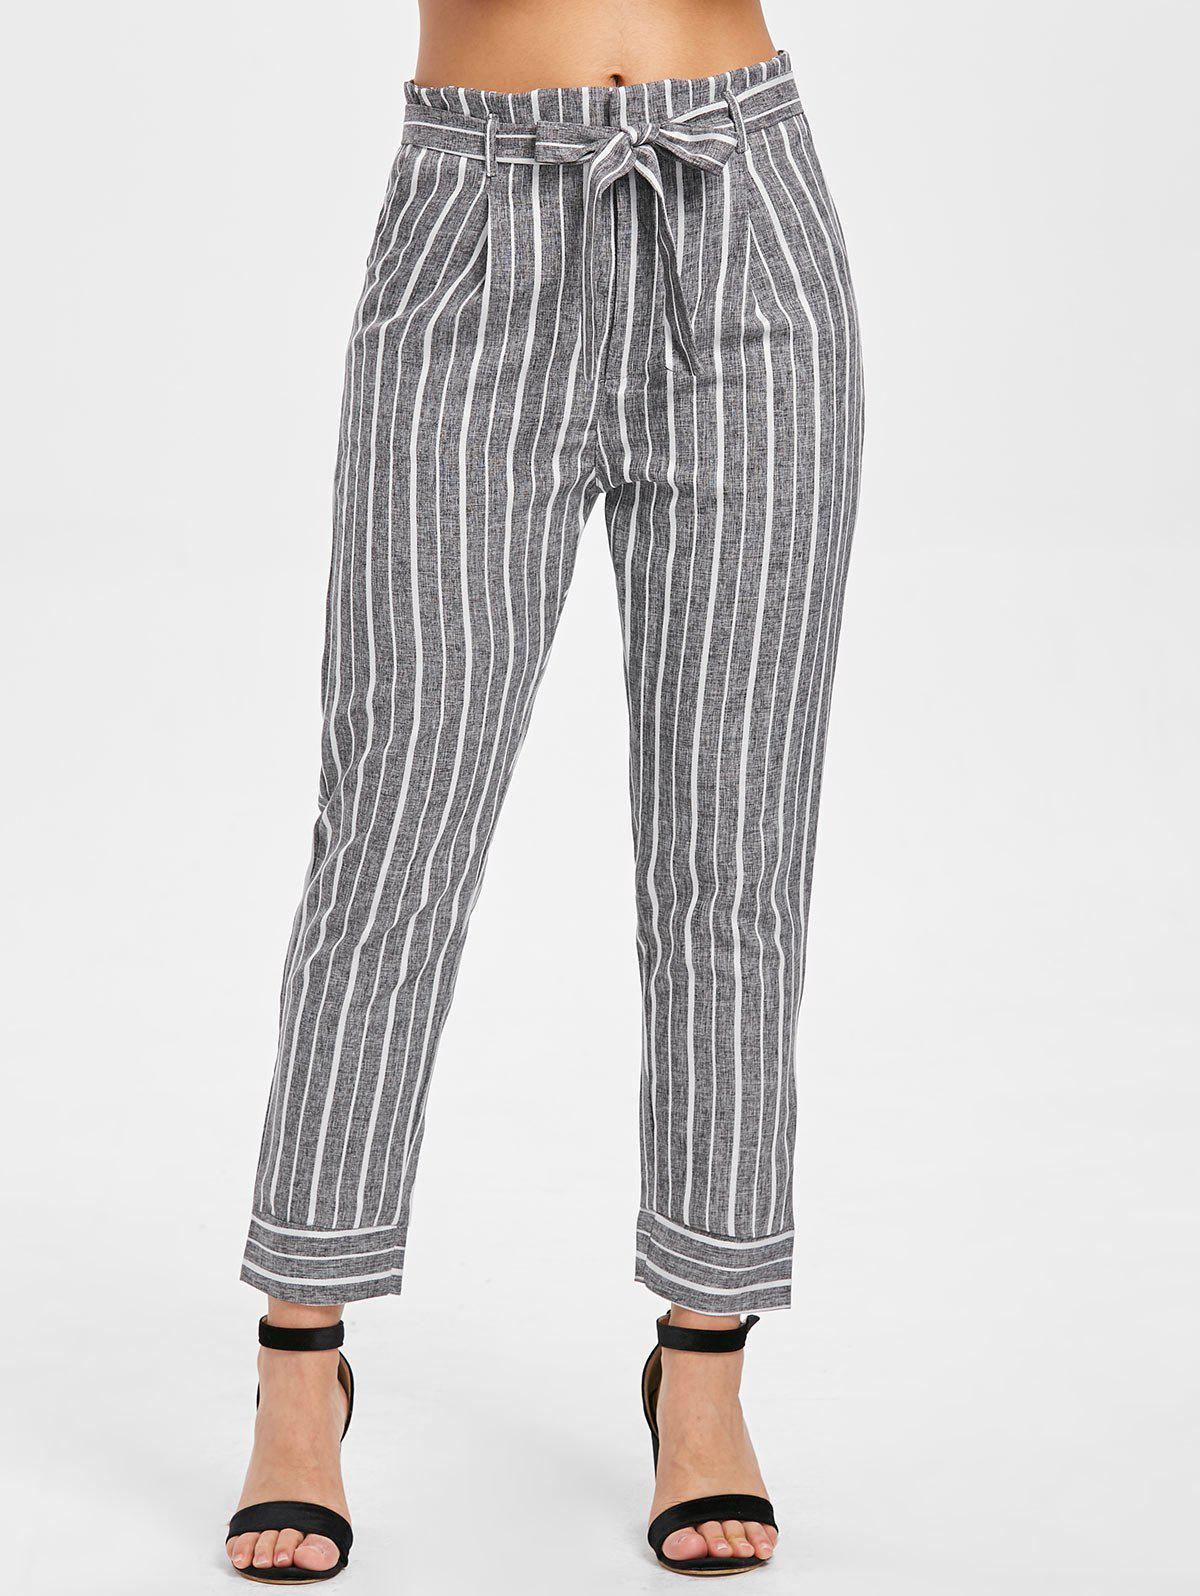 Fancy High Waist Striped Panel Pants with Belt